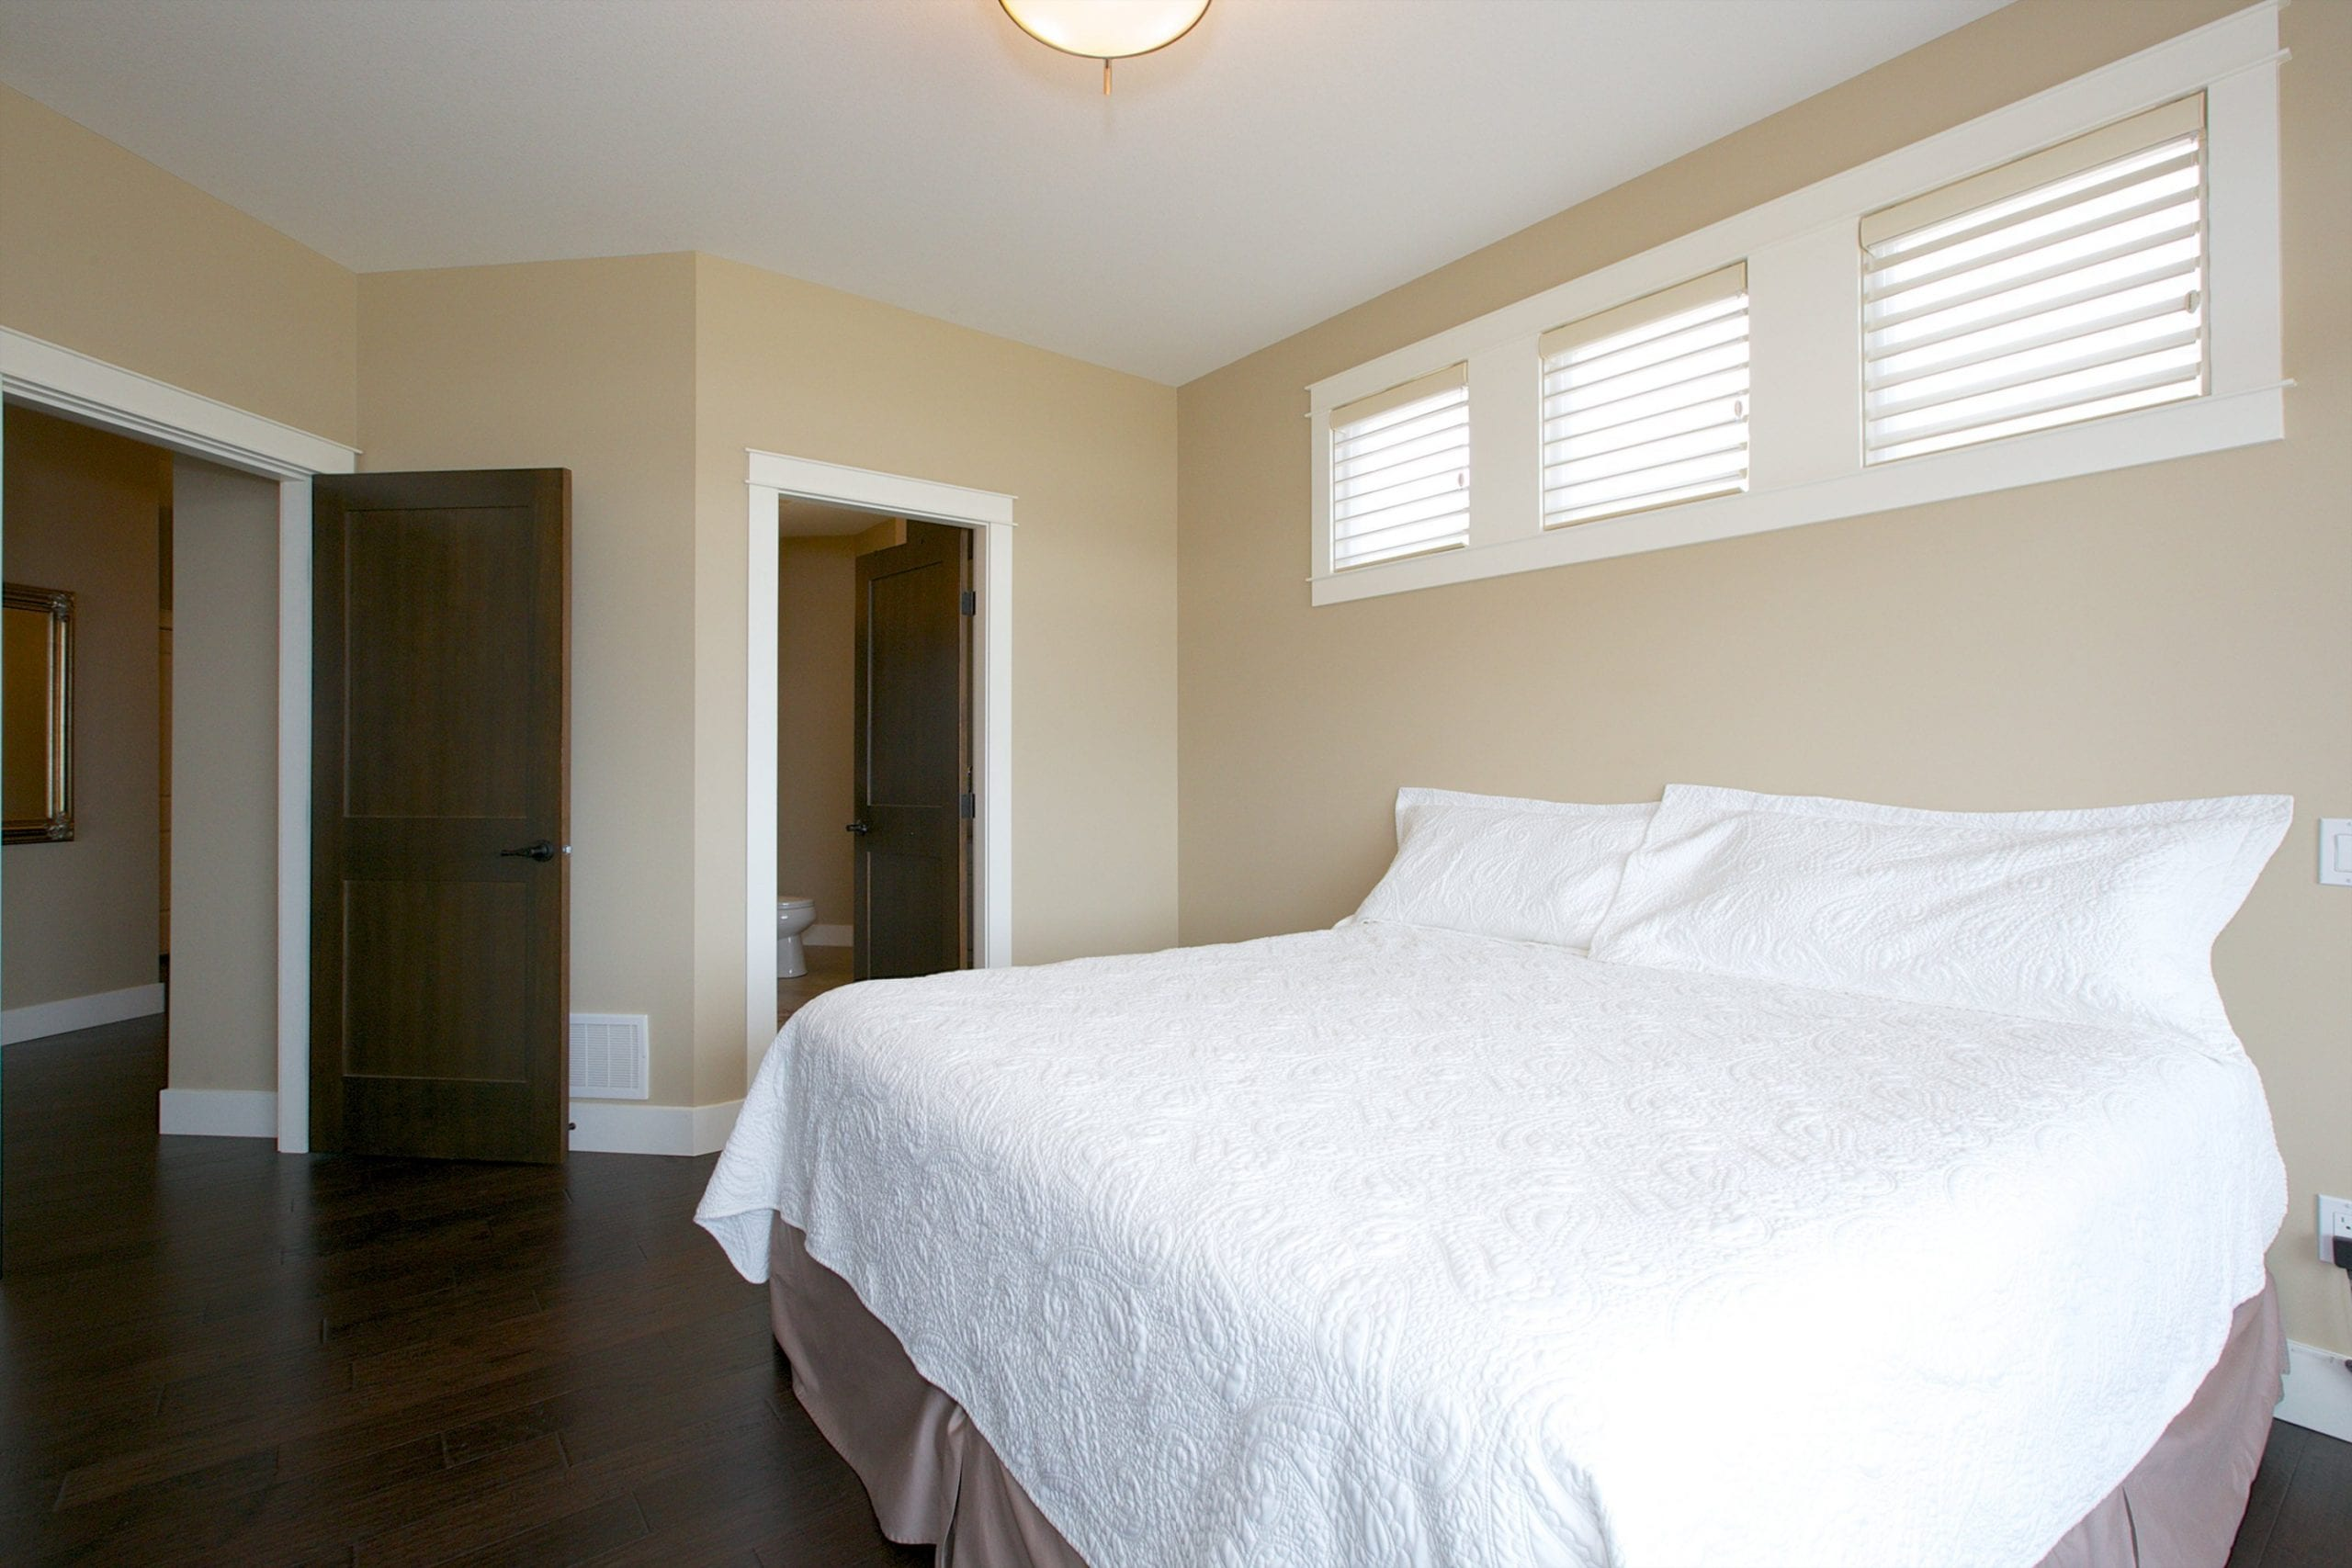 interior shot of west harbour home master bedroom with three windows directly above the bed and two doors in view